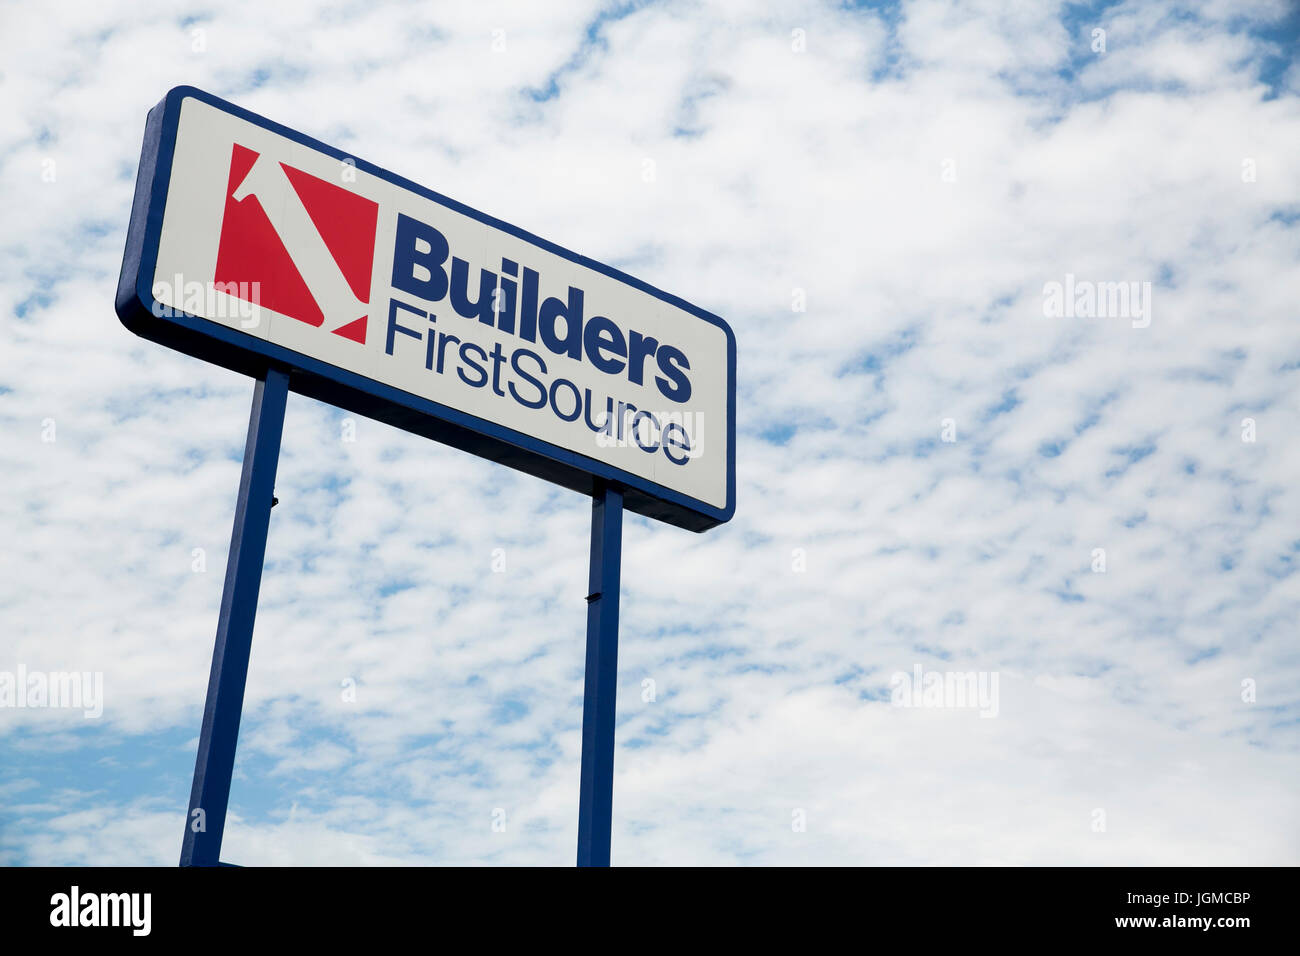 A logo sign outside of a facility occupied by Builders FirstSource, Inc., in Lexington, Kentucky on July 1, 2017. - Stock Image